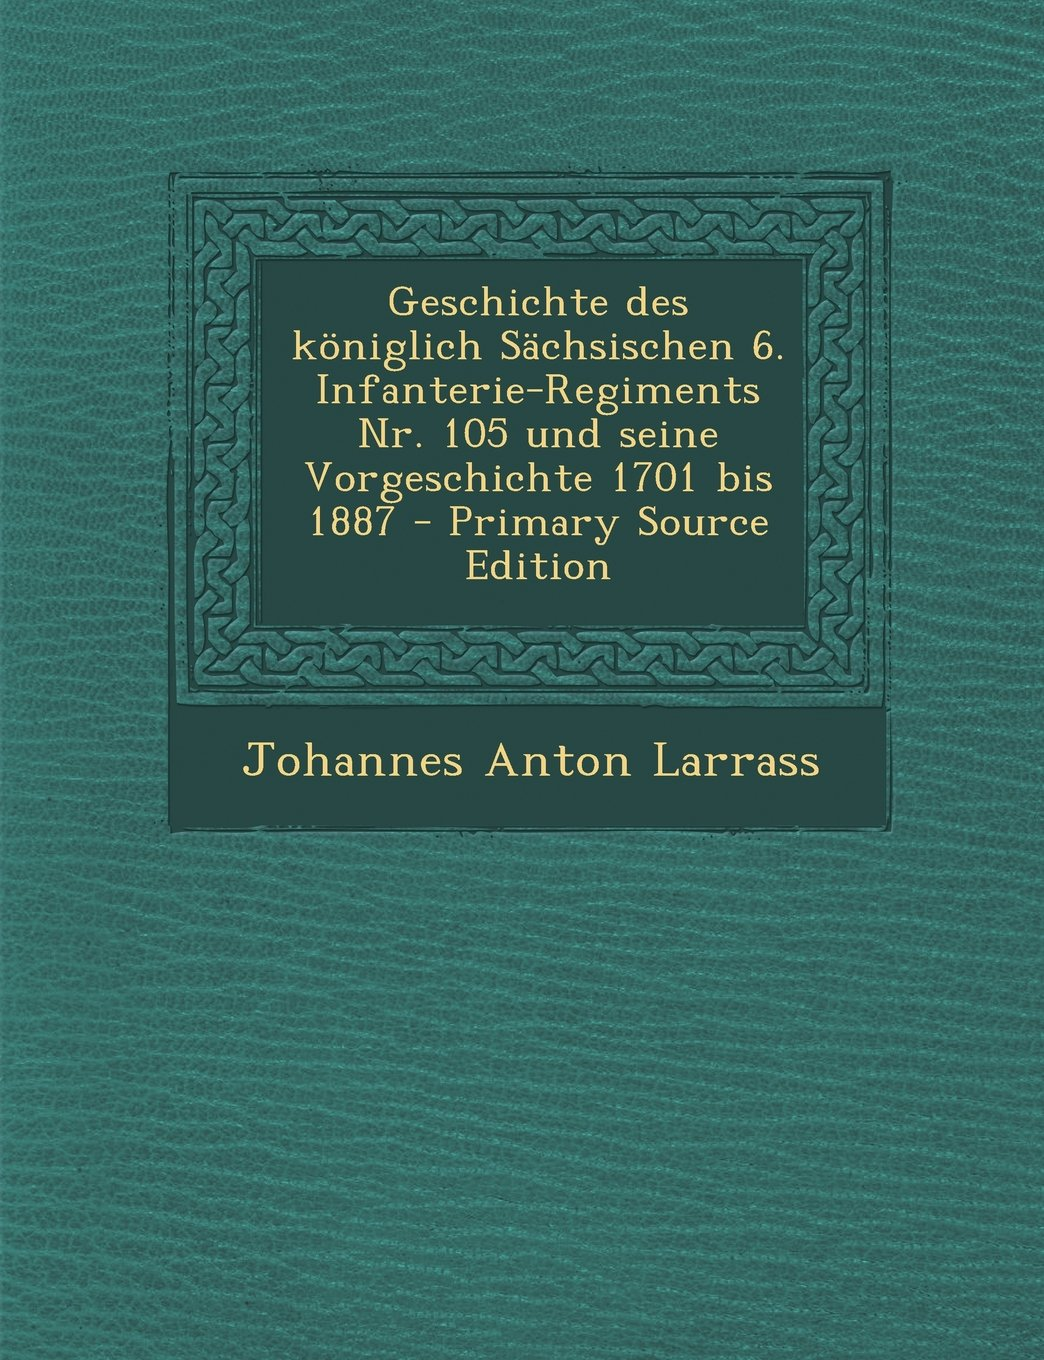 Download Geschichte Des Koniglich Sachsischen 6. Infanterie-Regiments NR. 105 Und Seine Vorgeschichte 1701 Bis 1887 - Primary Source Edition (German Edition) PDF